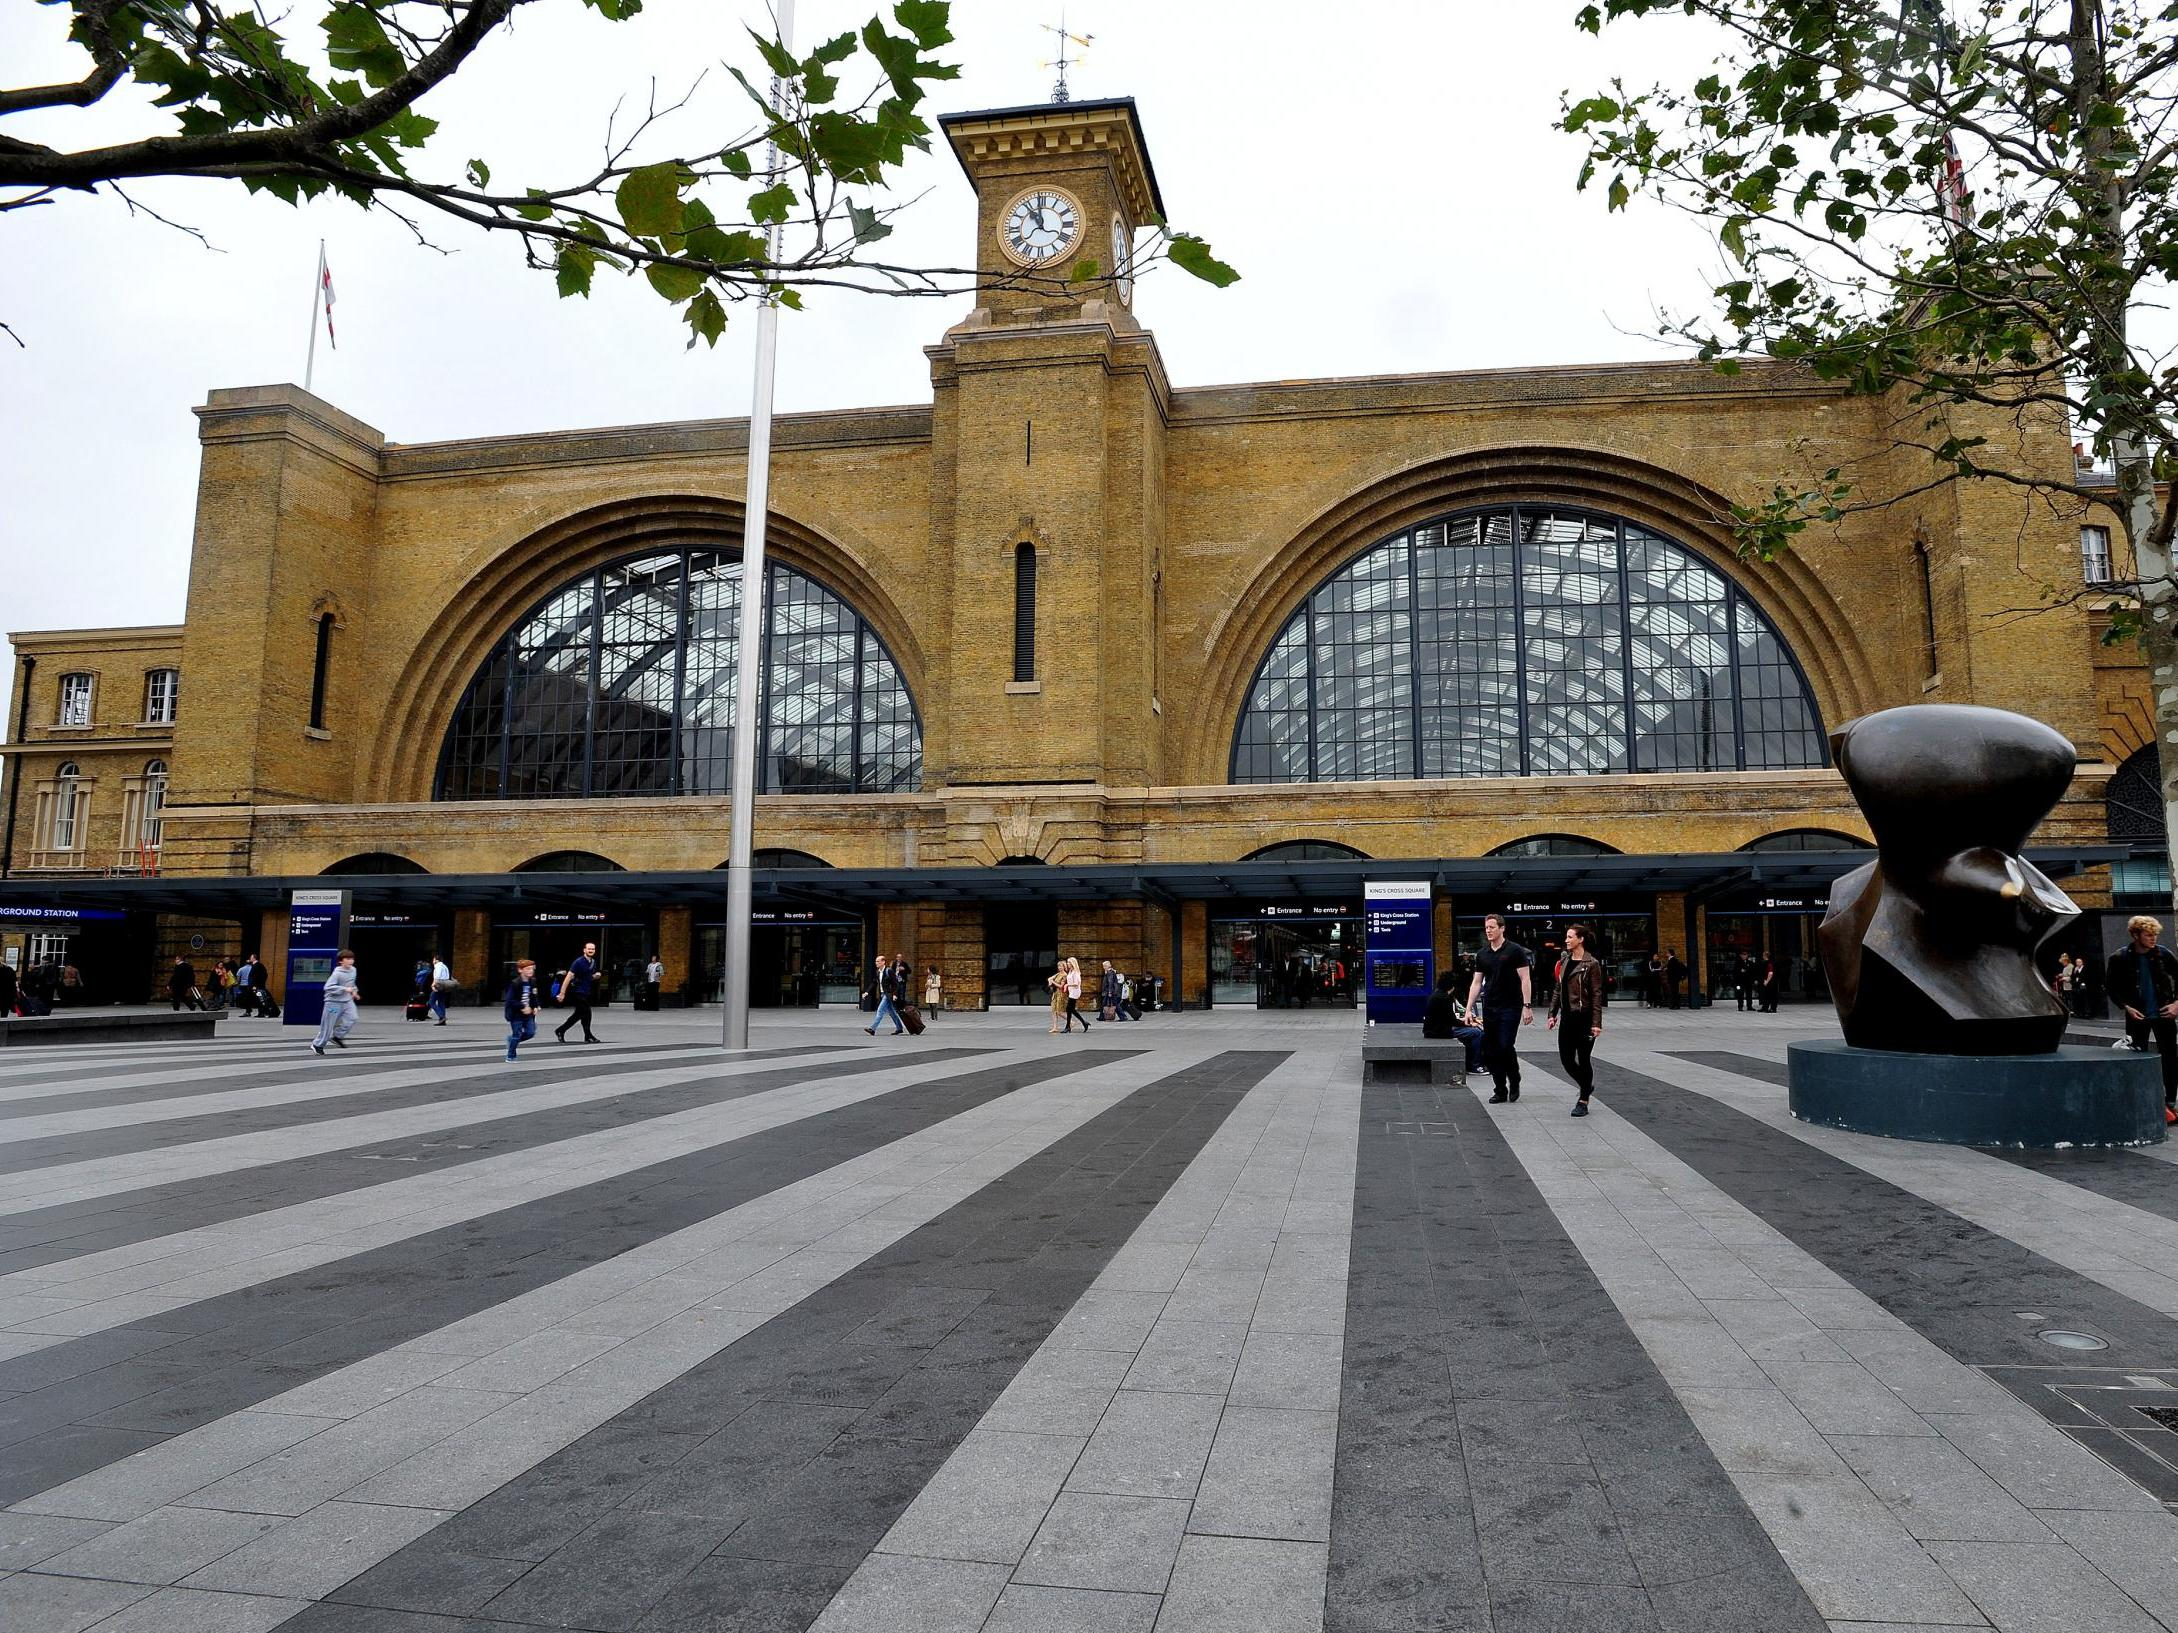 King's Cross is London's most stressful tube station